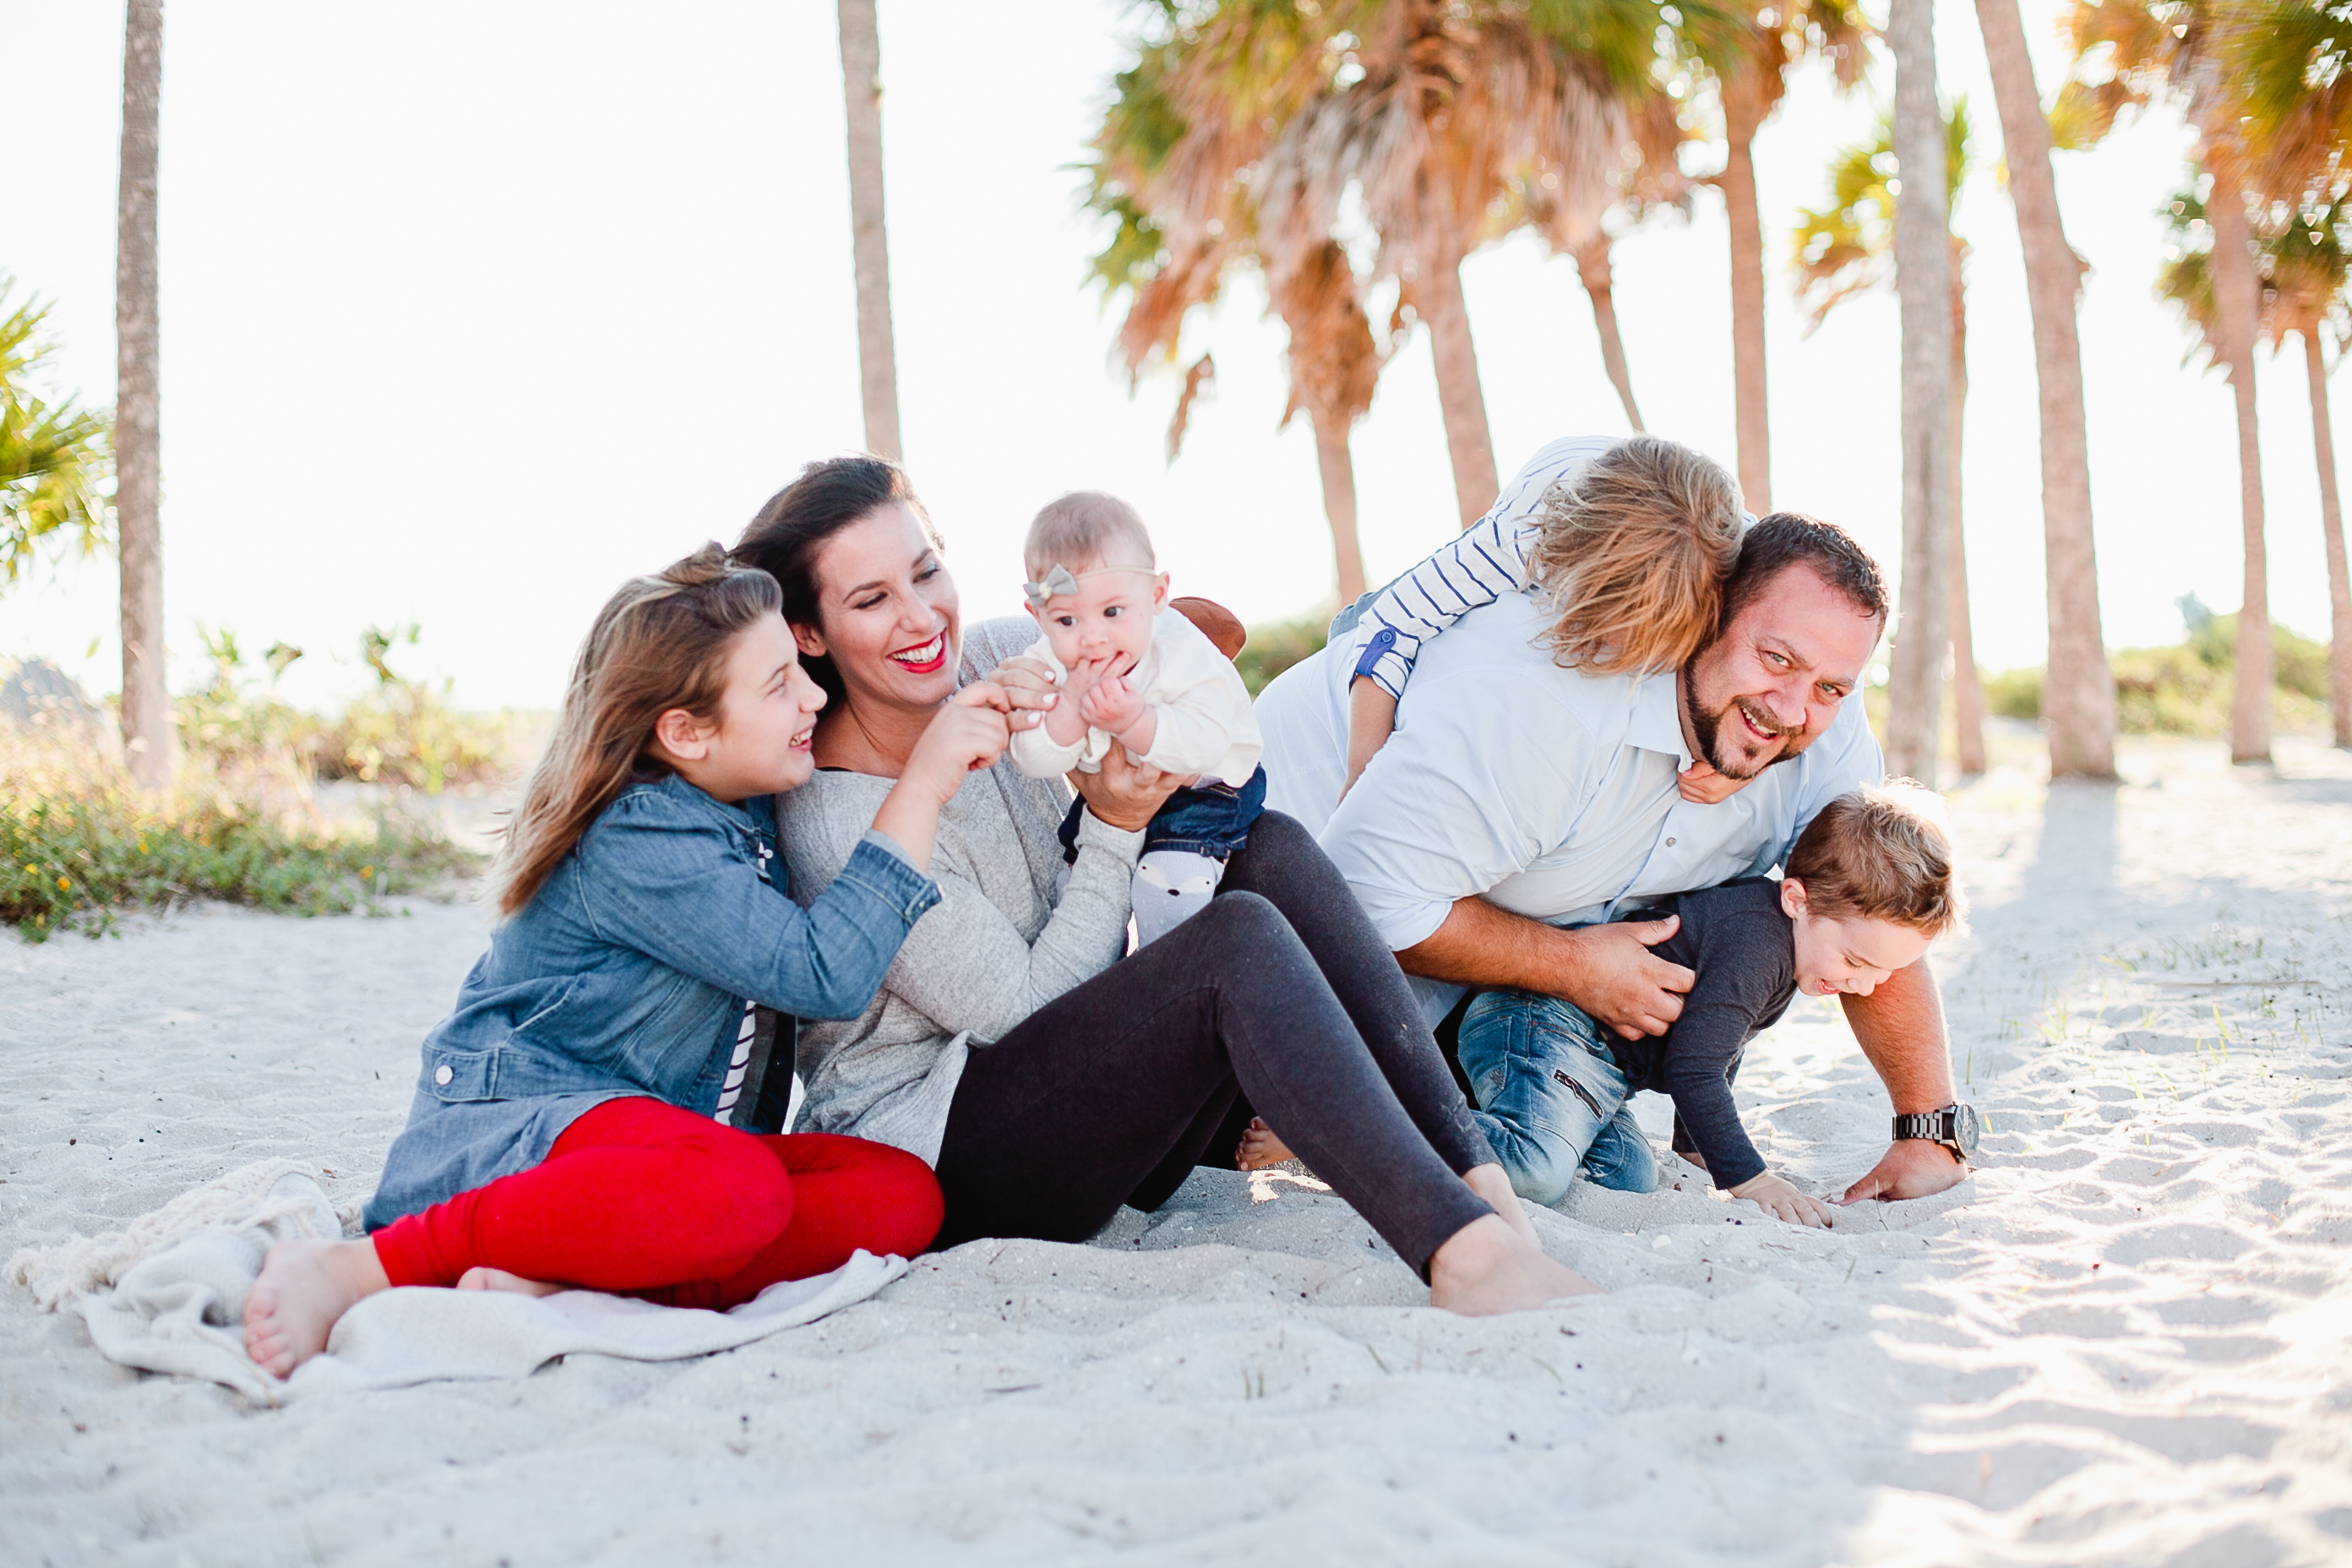 a frolicking fun family christmas card photo shoot at the beach - Family Photo Christmas Cards